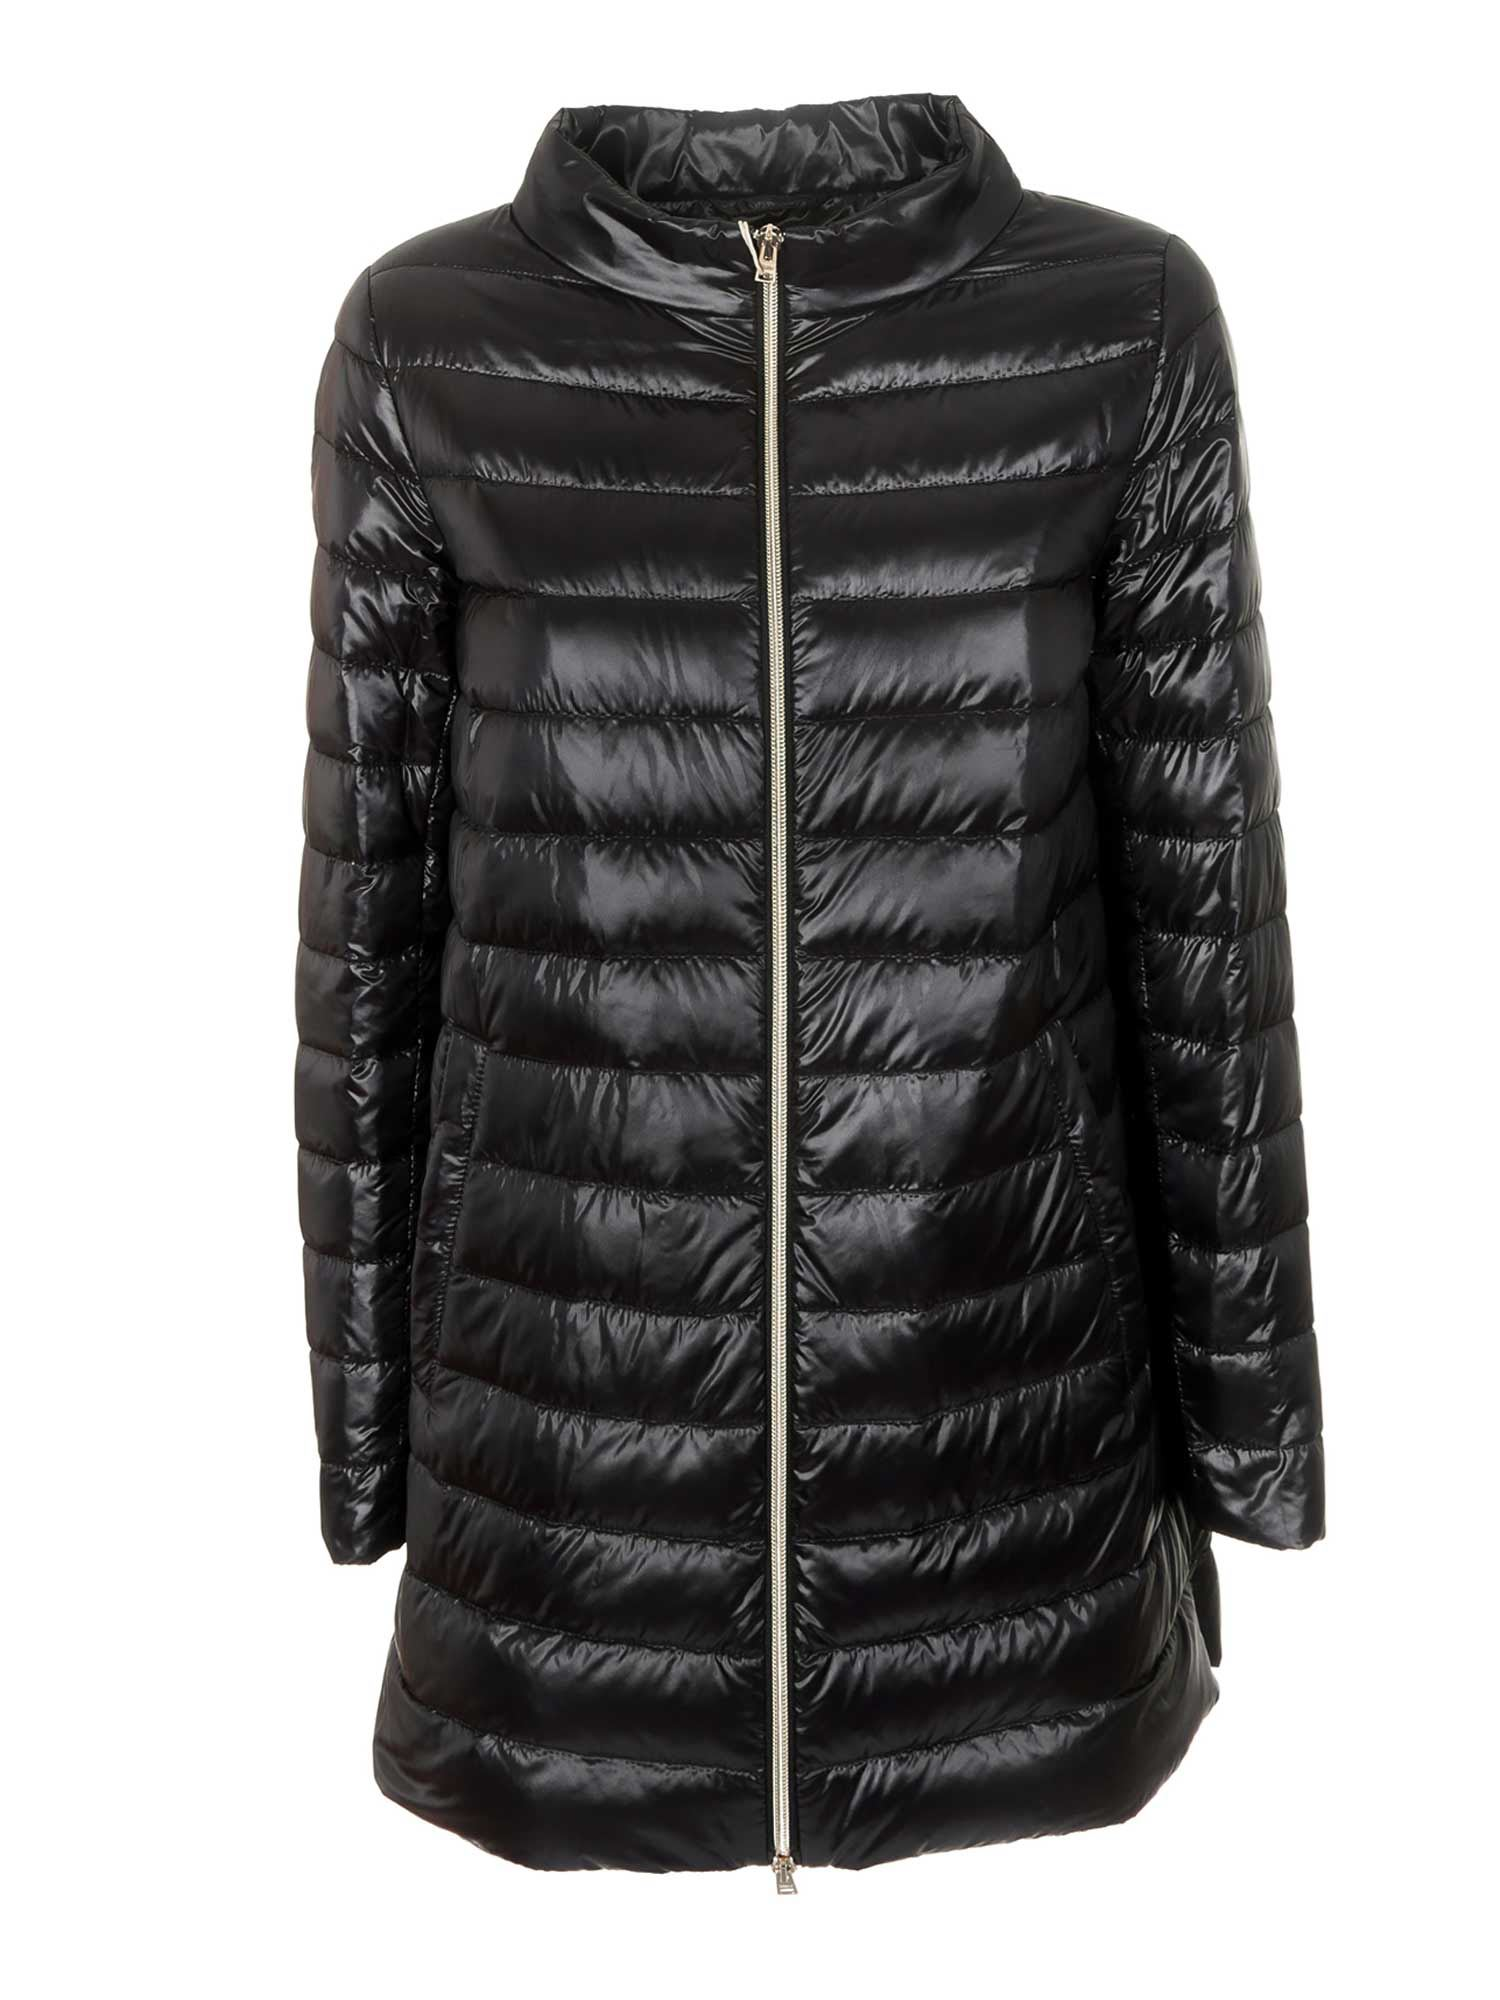 Herno Bomber jackets A-SHAPED DOWN JACKET IN BLACK